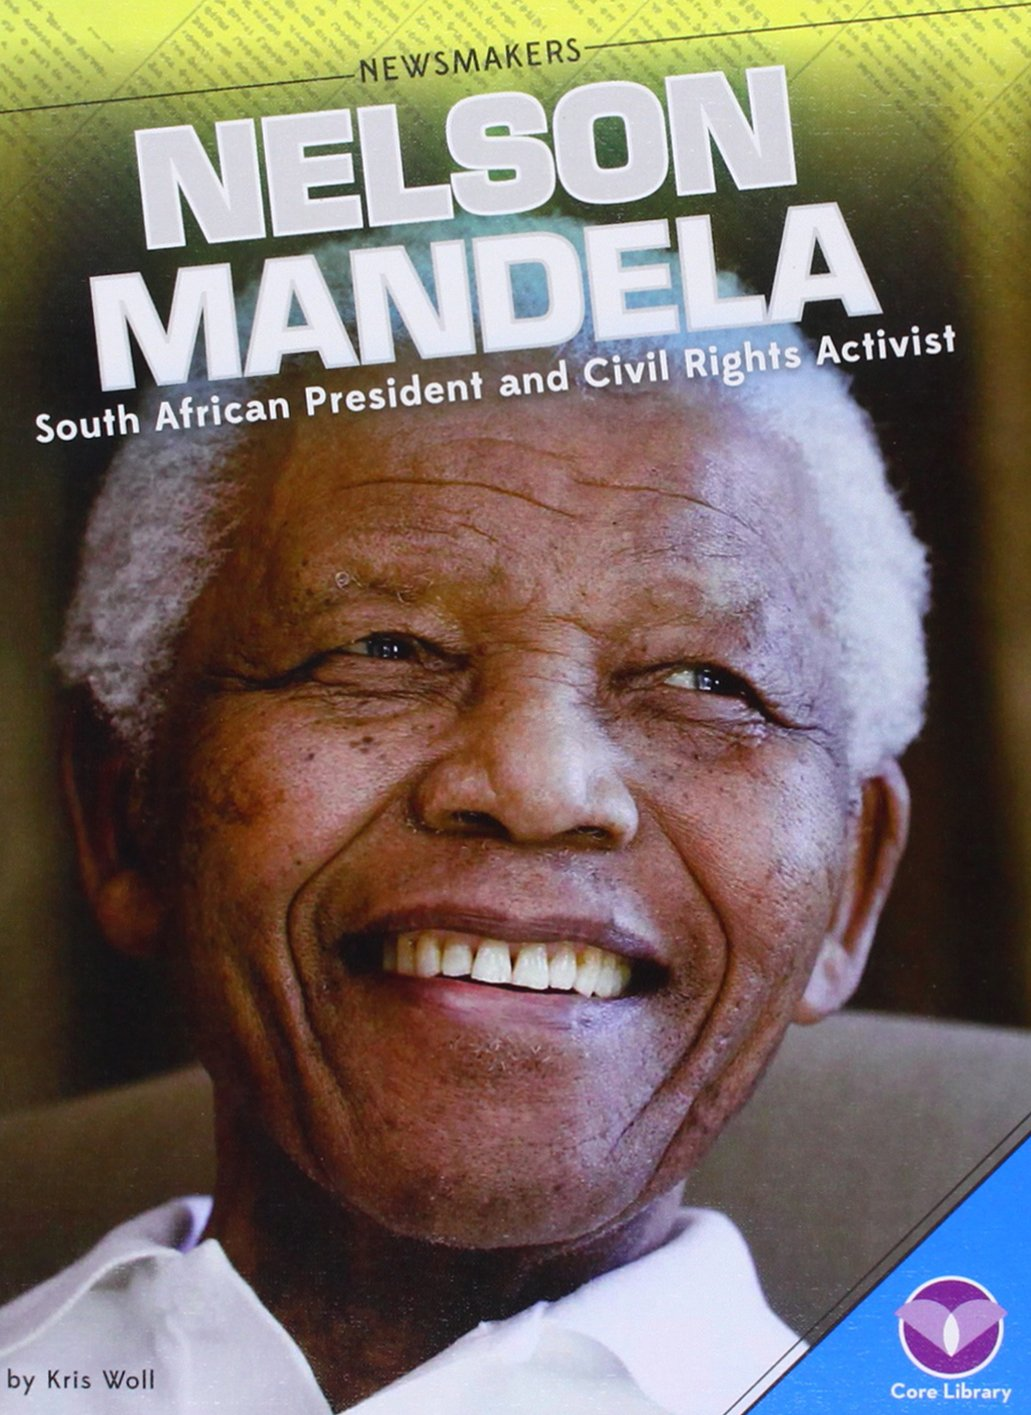 Nelson Mandela: South African President and Civil Rights Activist (Newsmakers)